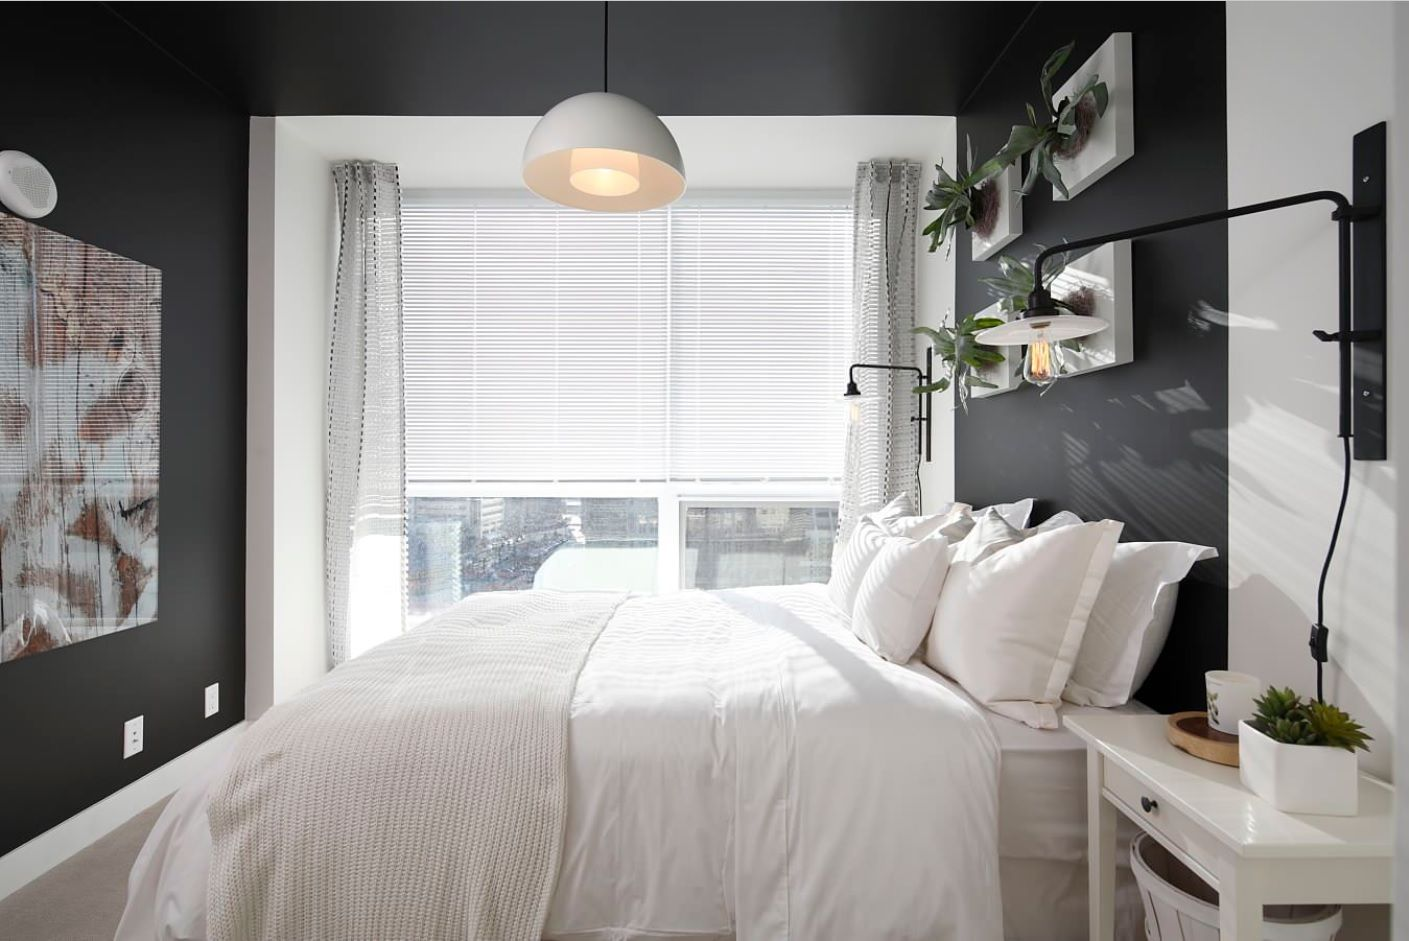 White Bedroom Furniture Set Ideas & Photos. Dark walls for the modern styled light room